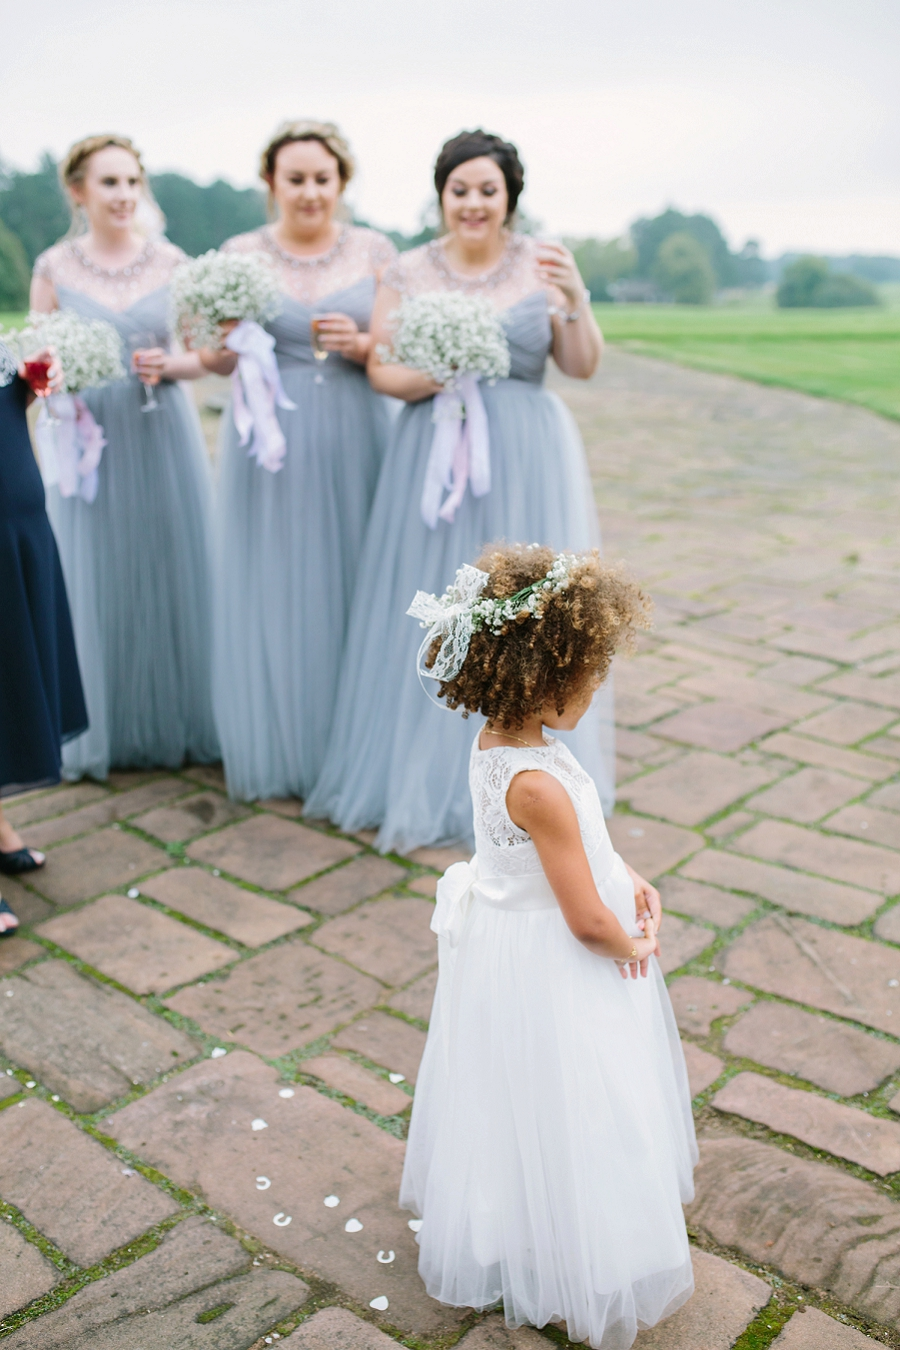 Sarah Janes Photography, Wedding photographer Chester, London, Sheffield, Wirral, Wrexham, Liverpool, Natural wedding photography, Quirky, documentary_0058.jpg